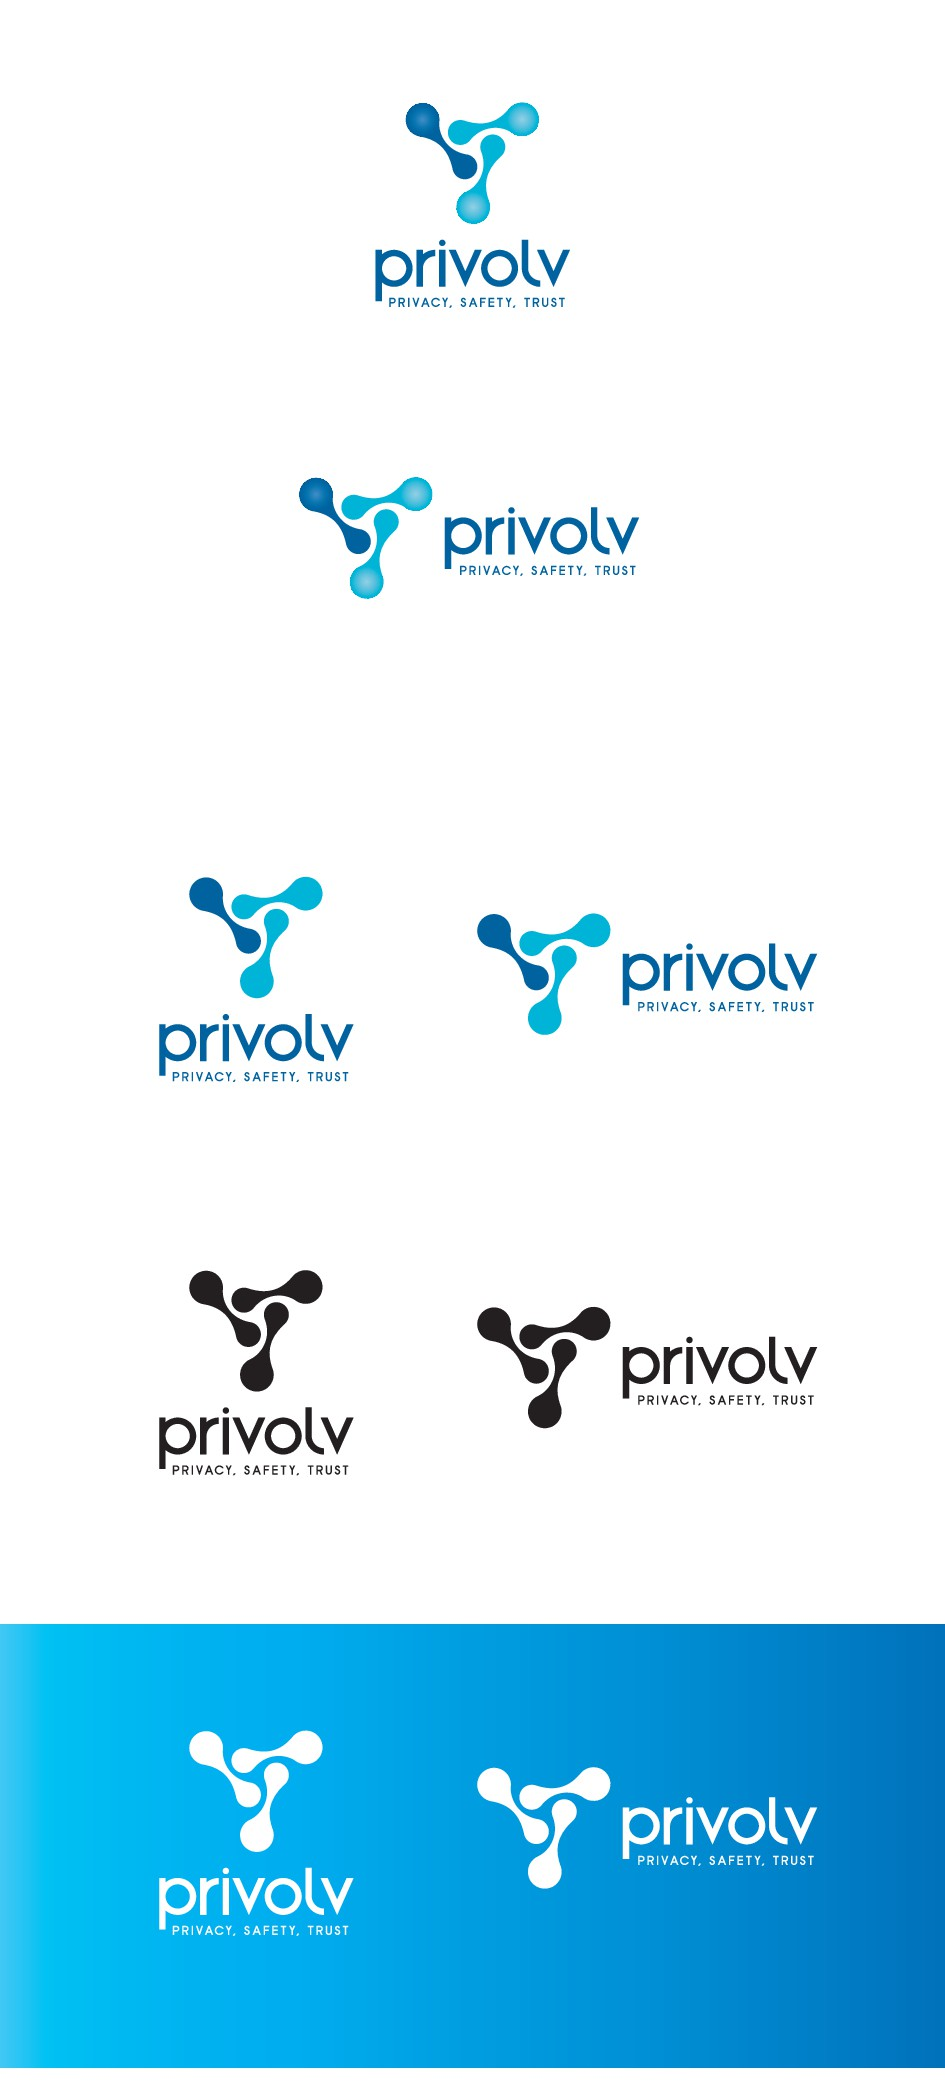 Design a corporate logo for a company that offers the latest in privacy technology